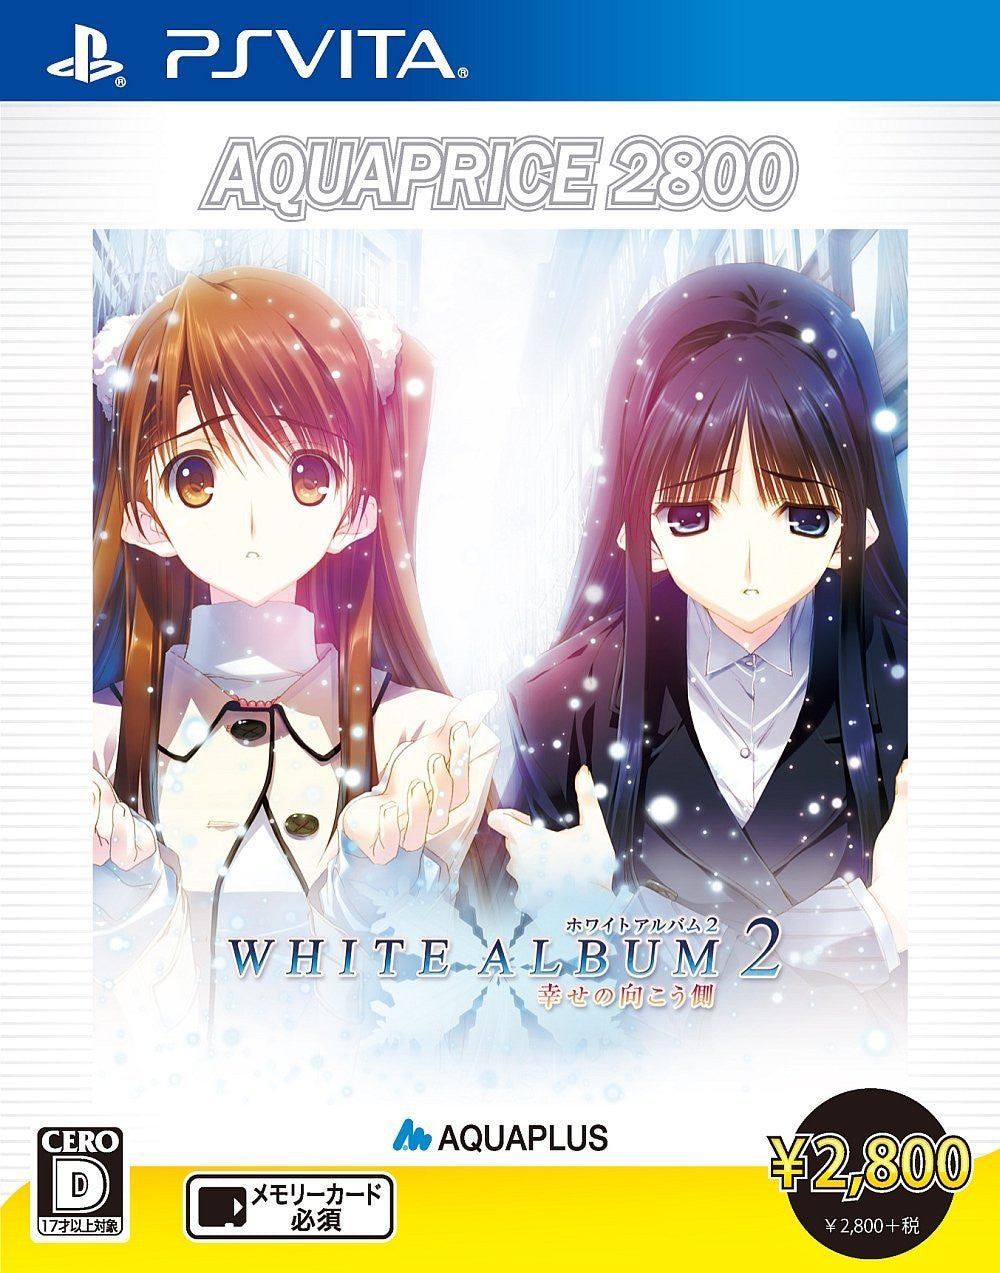 Image 1 for White Album 2: Shiawase no Mukougawa [Aqua Price 2800]